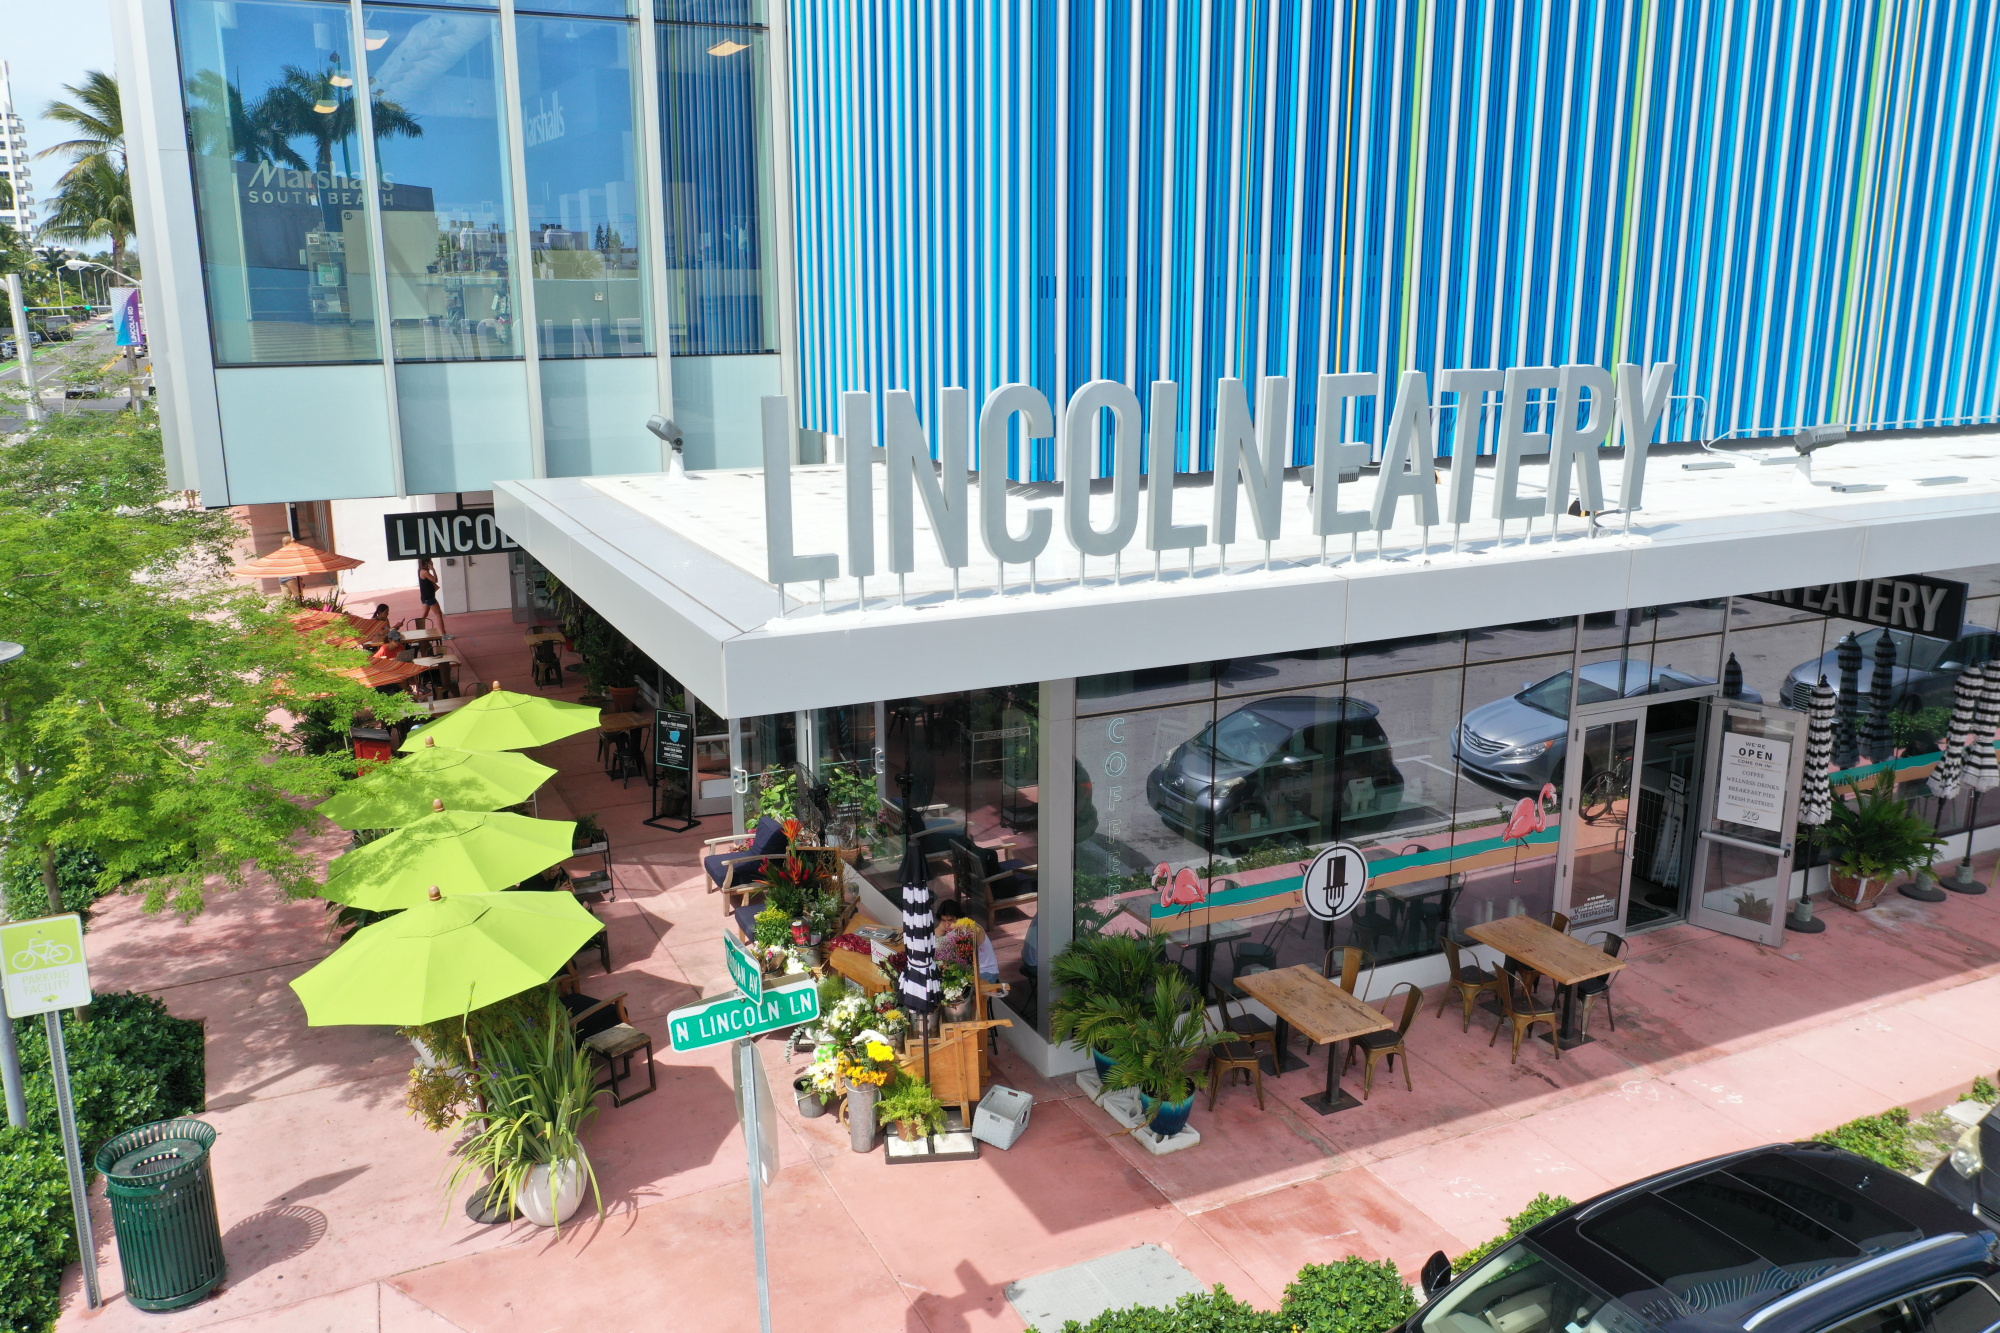 miami vacation guide, exterior of The Lincoln eatery food hall in Miami Beach, Florida